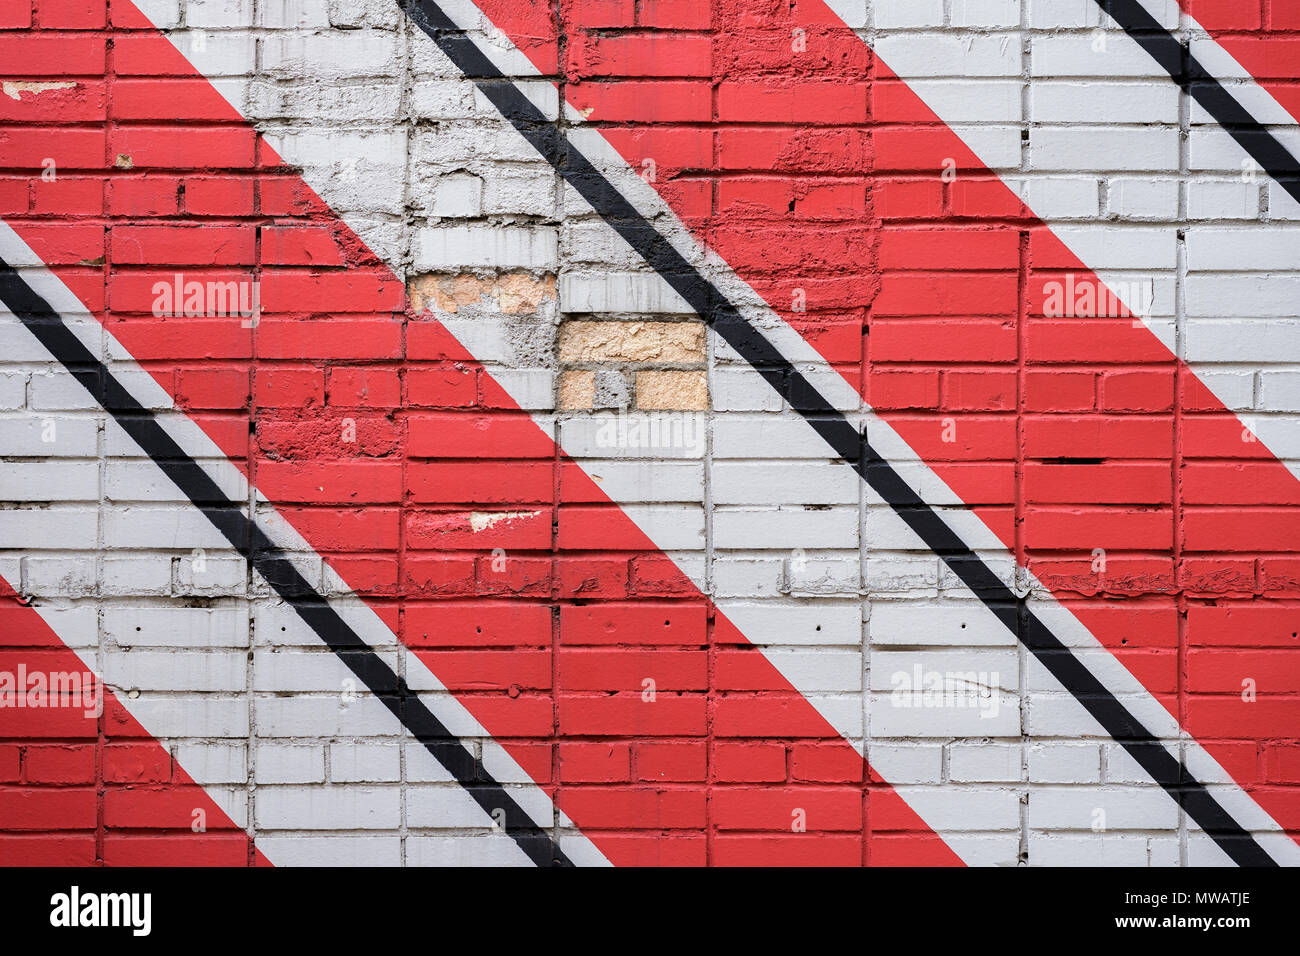 Diagonally painted bricks surface of wall in red, black and white colors, as graffiti. Graphic grunge texture of wall. Abstract geometric modern background - Stock Image